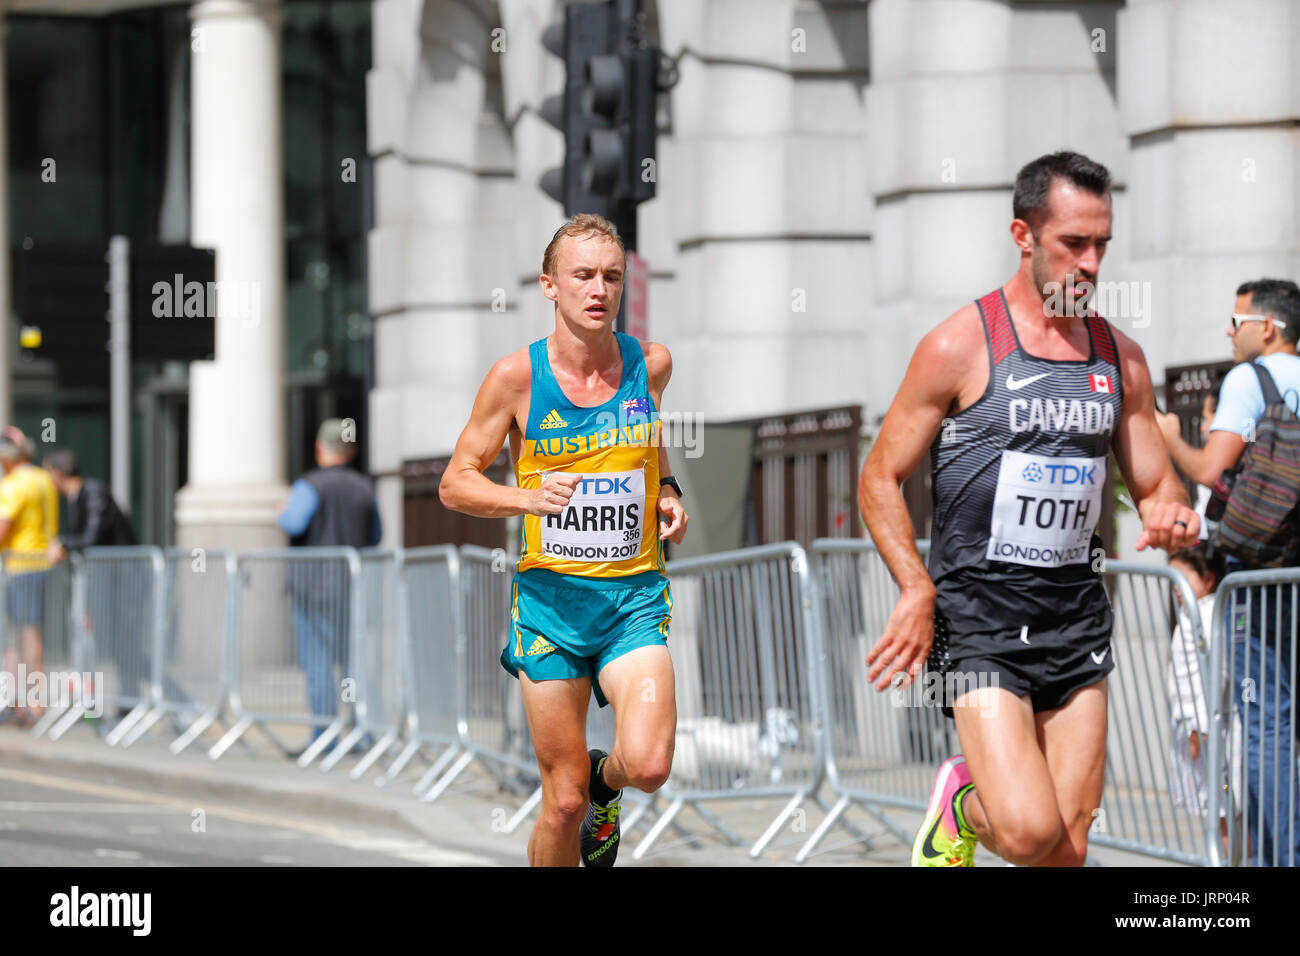 Stratford, London, UK. 6th August, 2017. World Athletics Championship   IAAF World Championship Marathon Sunday August. Runners from all over the world are taking place in IAAF marathon in London. England once again being in the center of world class sporting event. Europe, England, London Stratford Olympic village sporting event 2017. Mo Farah last race. Mens marathon IAAF 2017 London August 6th. Stock Photo